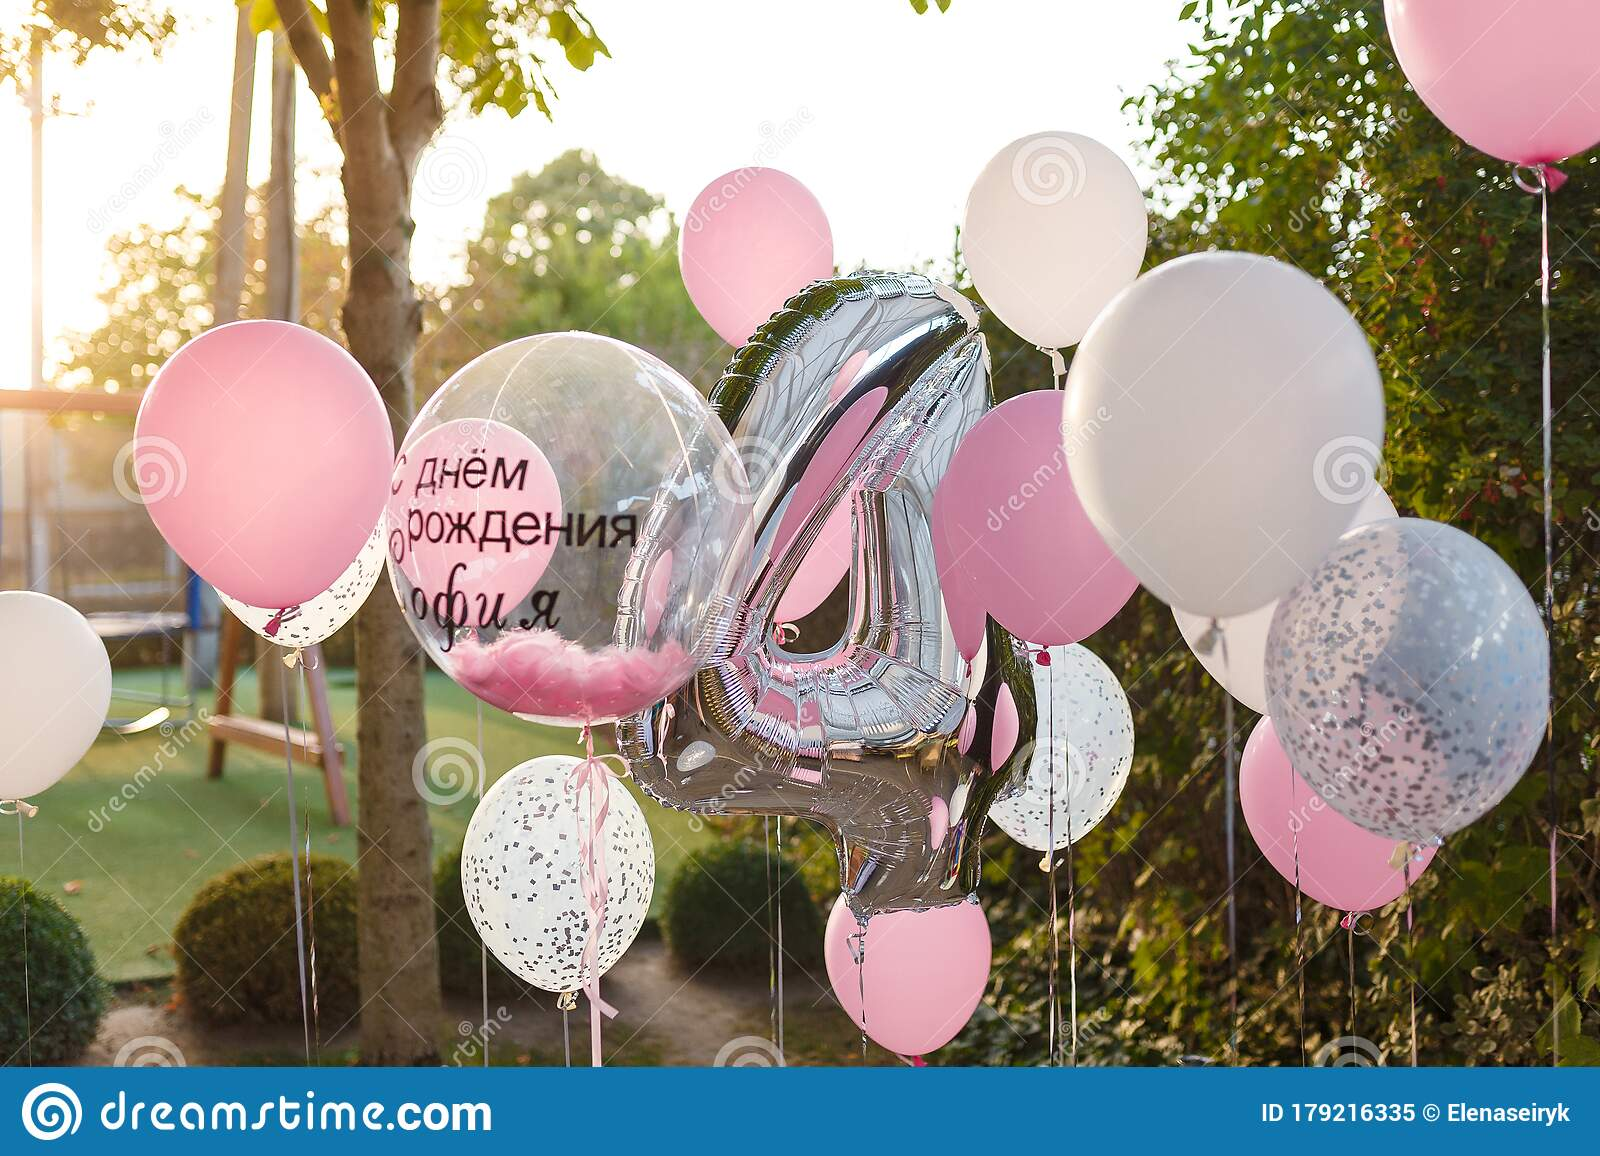 Pink White And Transparent Helium Balloons Silver Number 4 And Inscription Happy Birthday Outdoor Party Decorations Stock Image Image Of Decorative Design 179216335